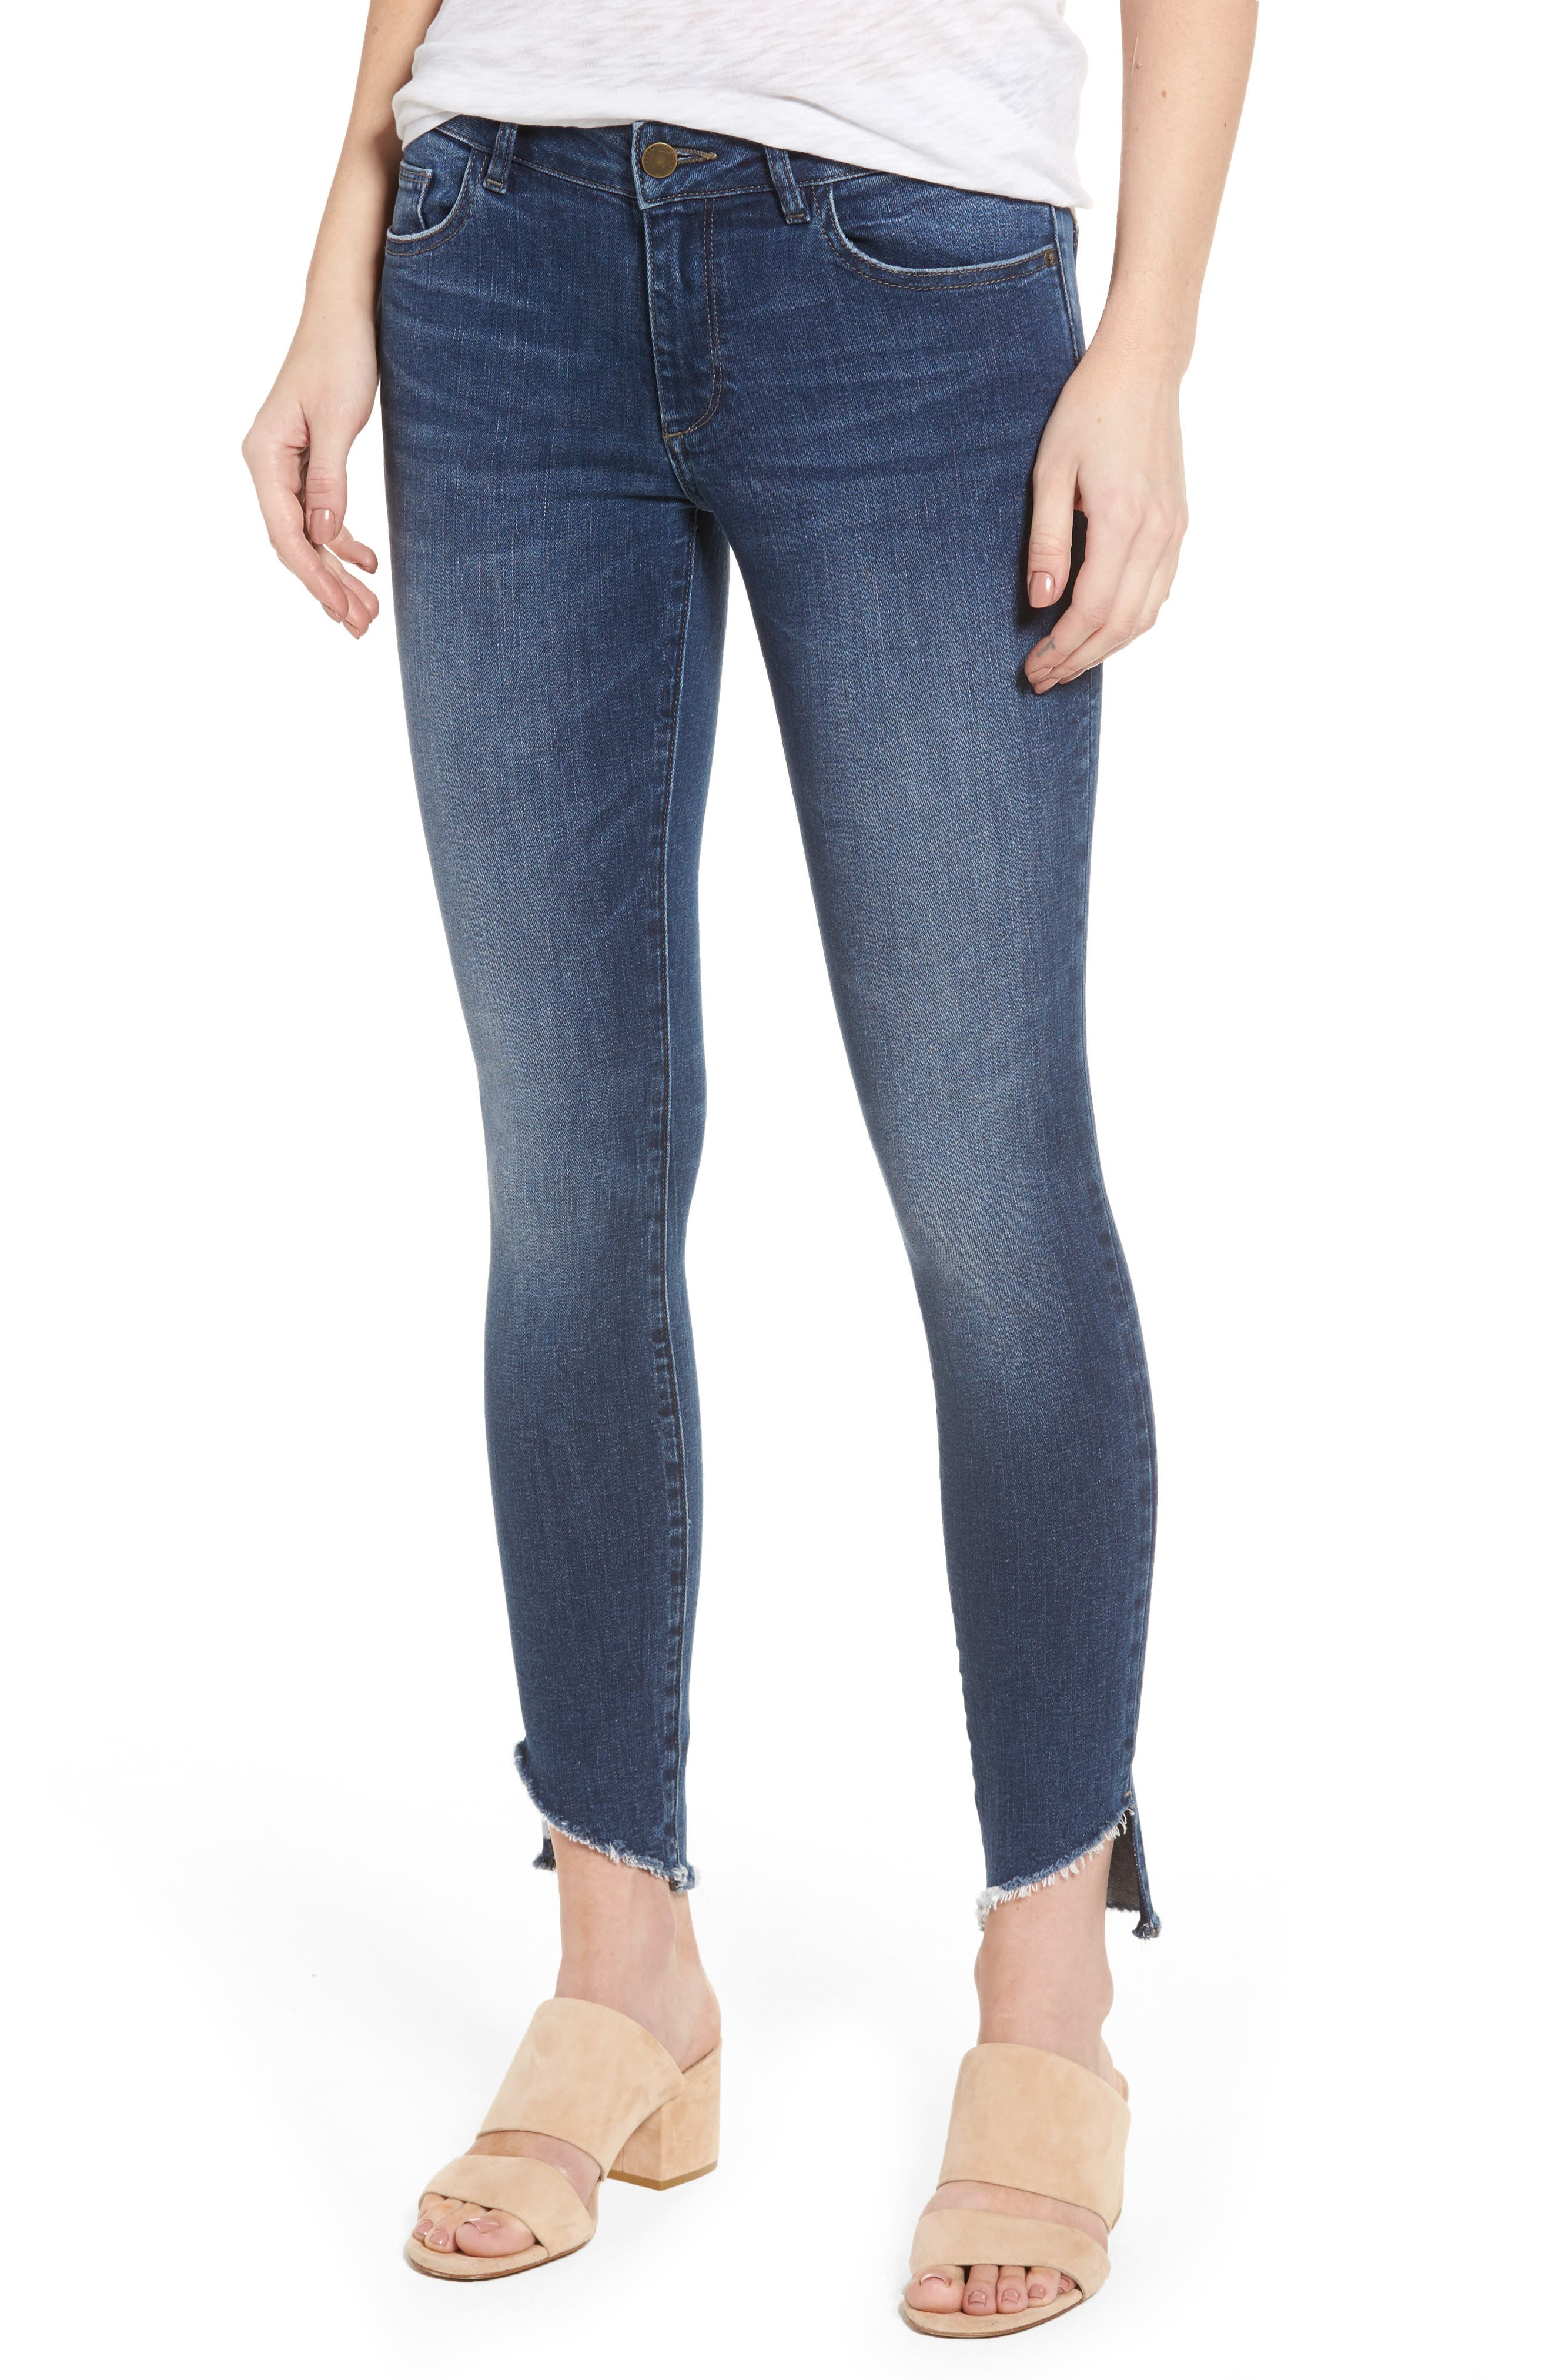 DL1961 Wagner Petite Ankle Skinny Jeans